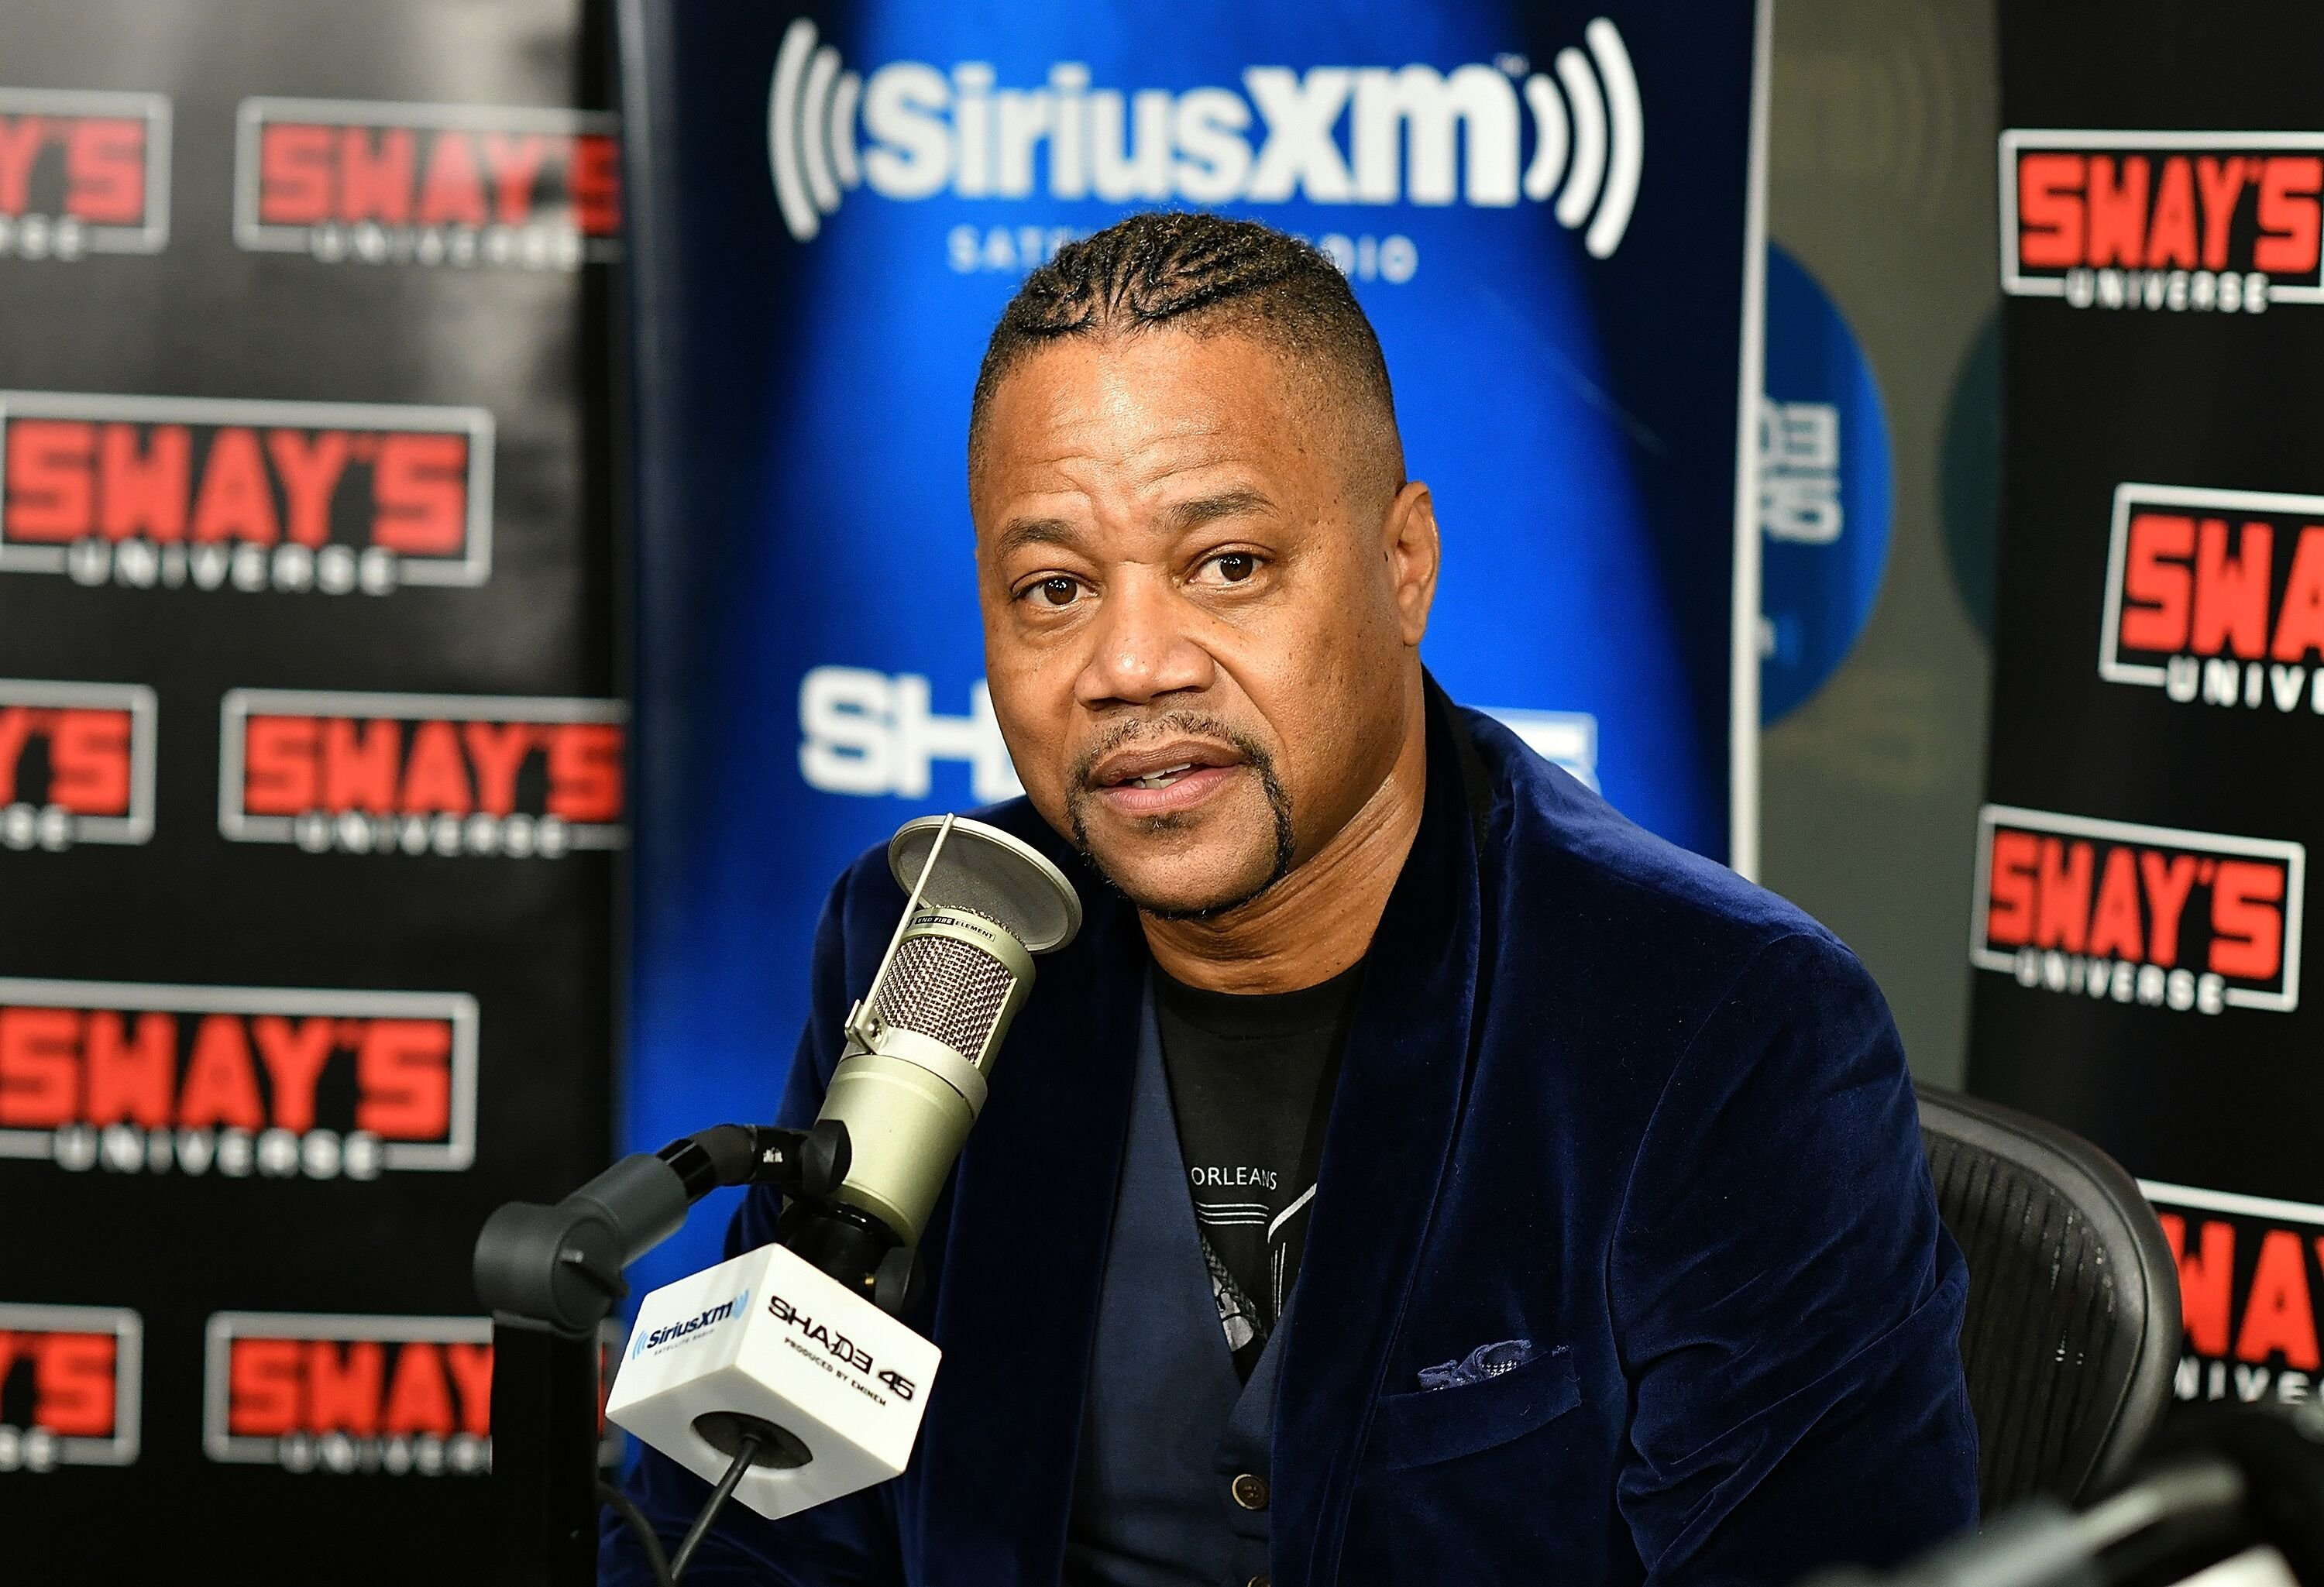 Cuba Gooding Jr. at a SiriusXM Interview | Source: Getty Images/GlobalImagesUkraine